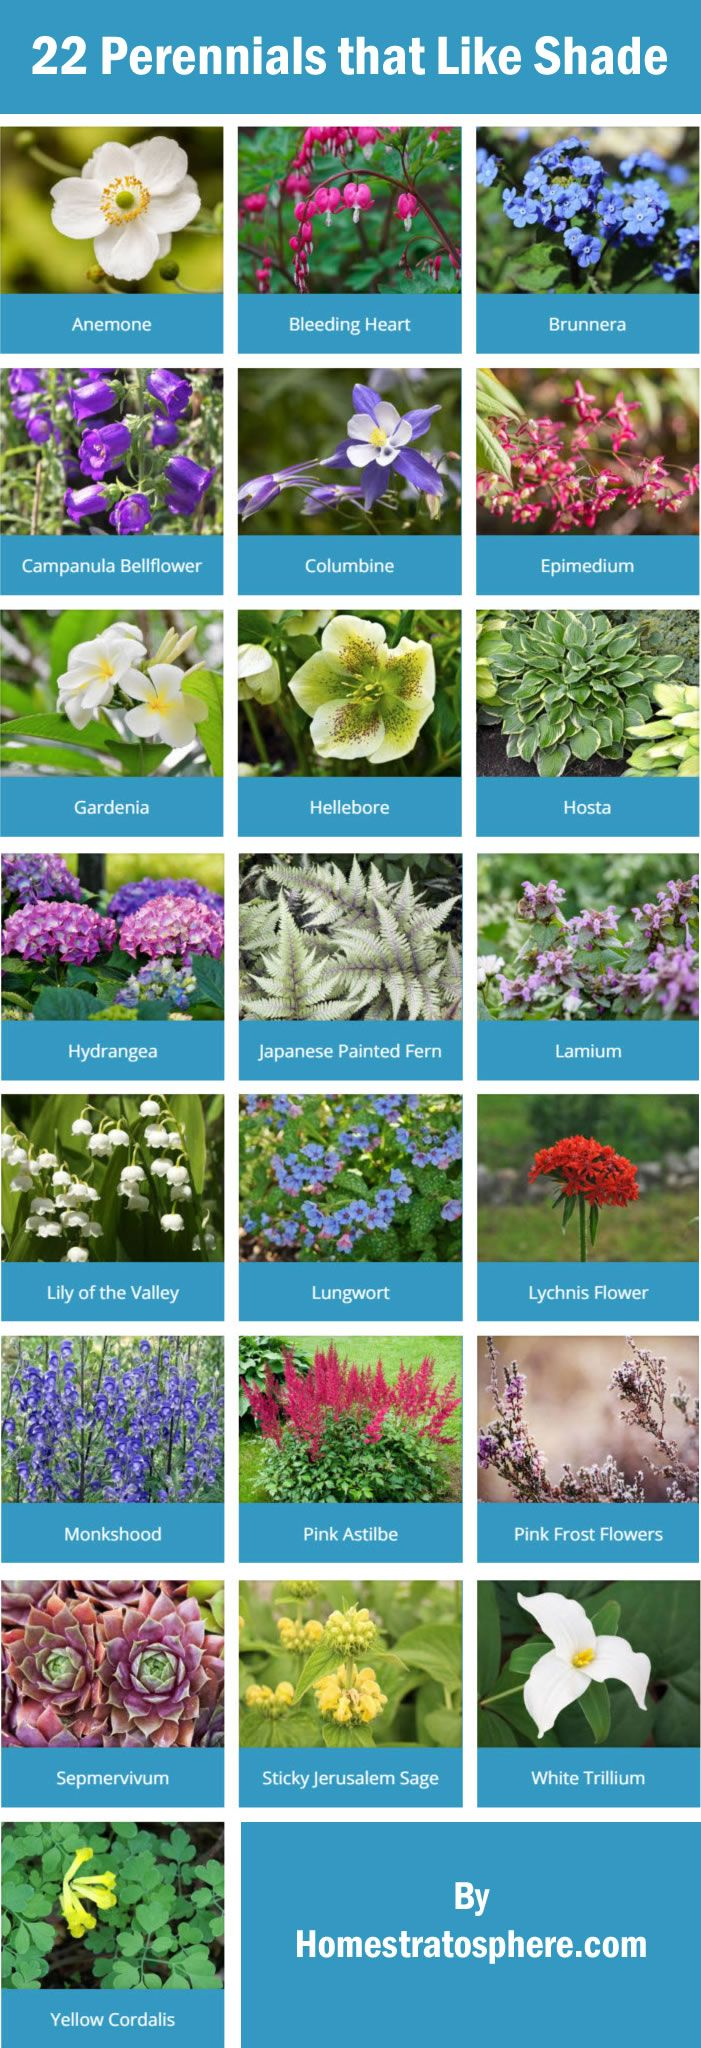 22 Perennials for Shade Plants and Flowers